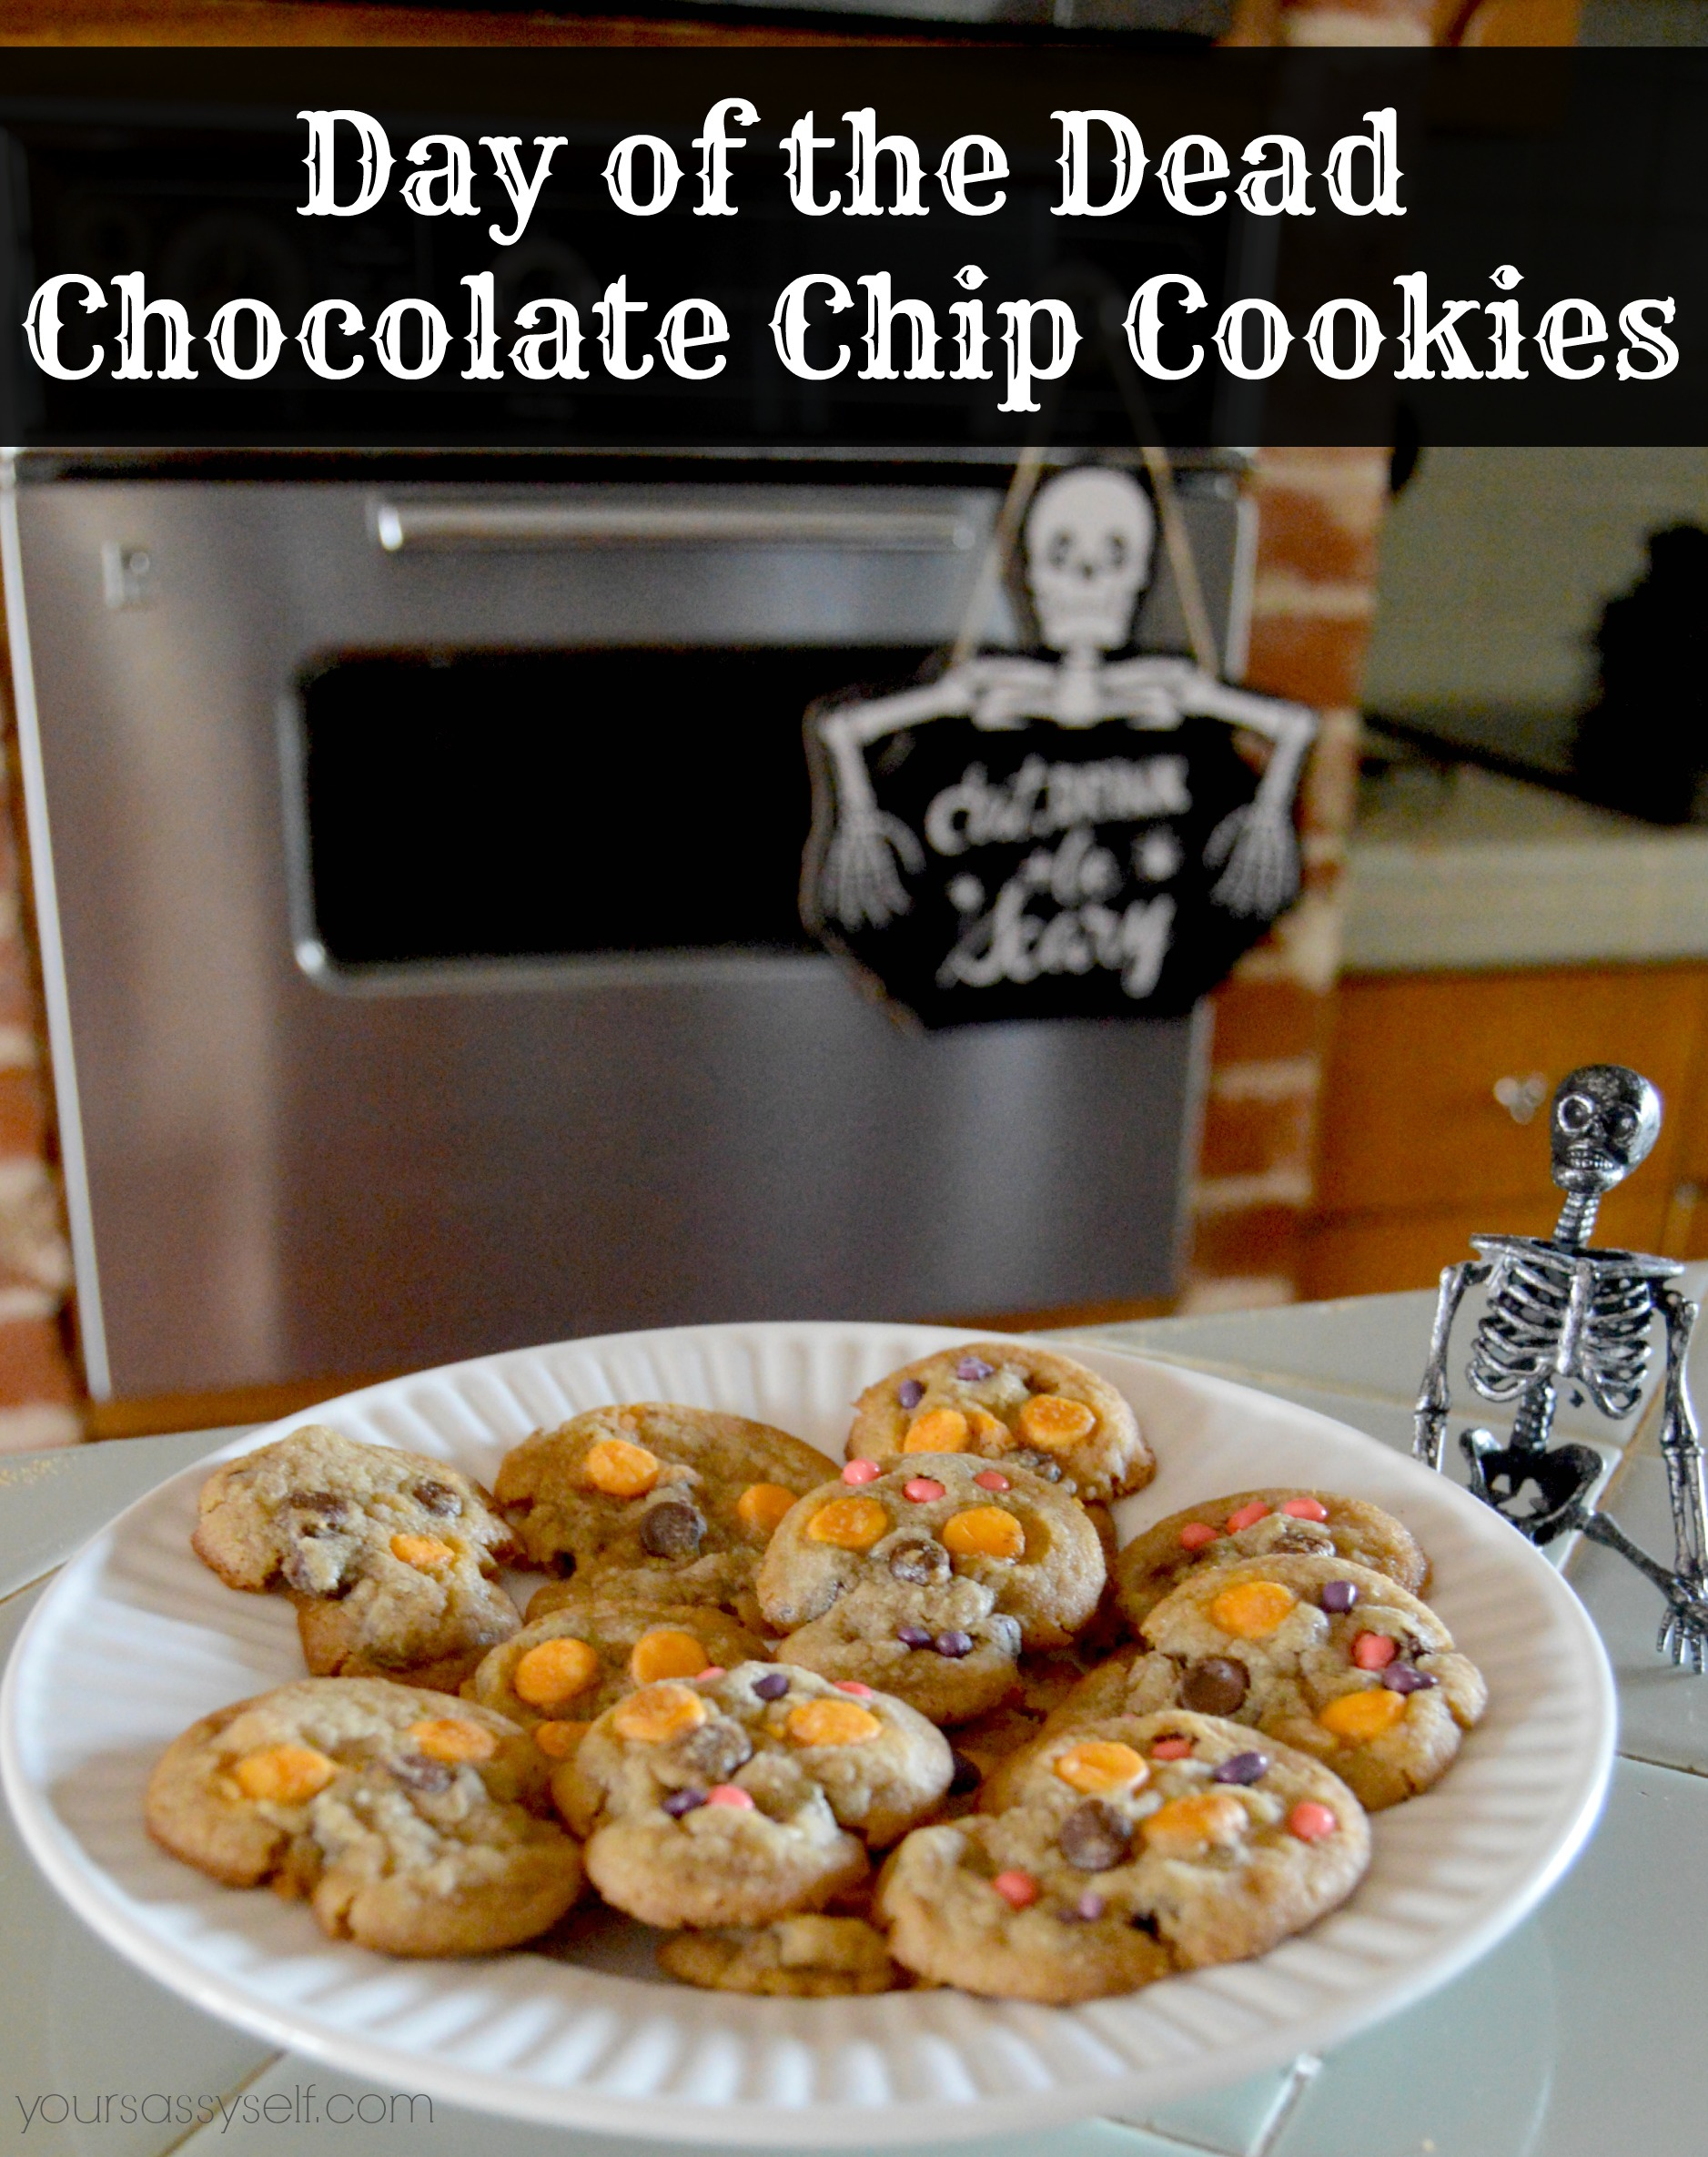 Day of the Dead Chocolate Chip Cookies